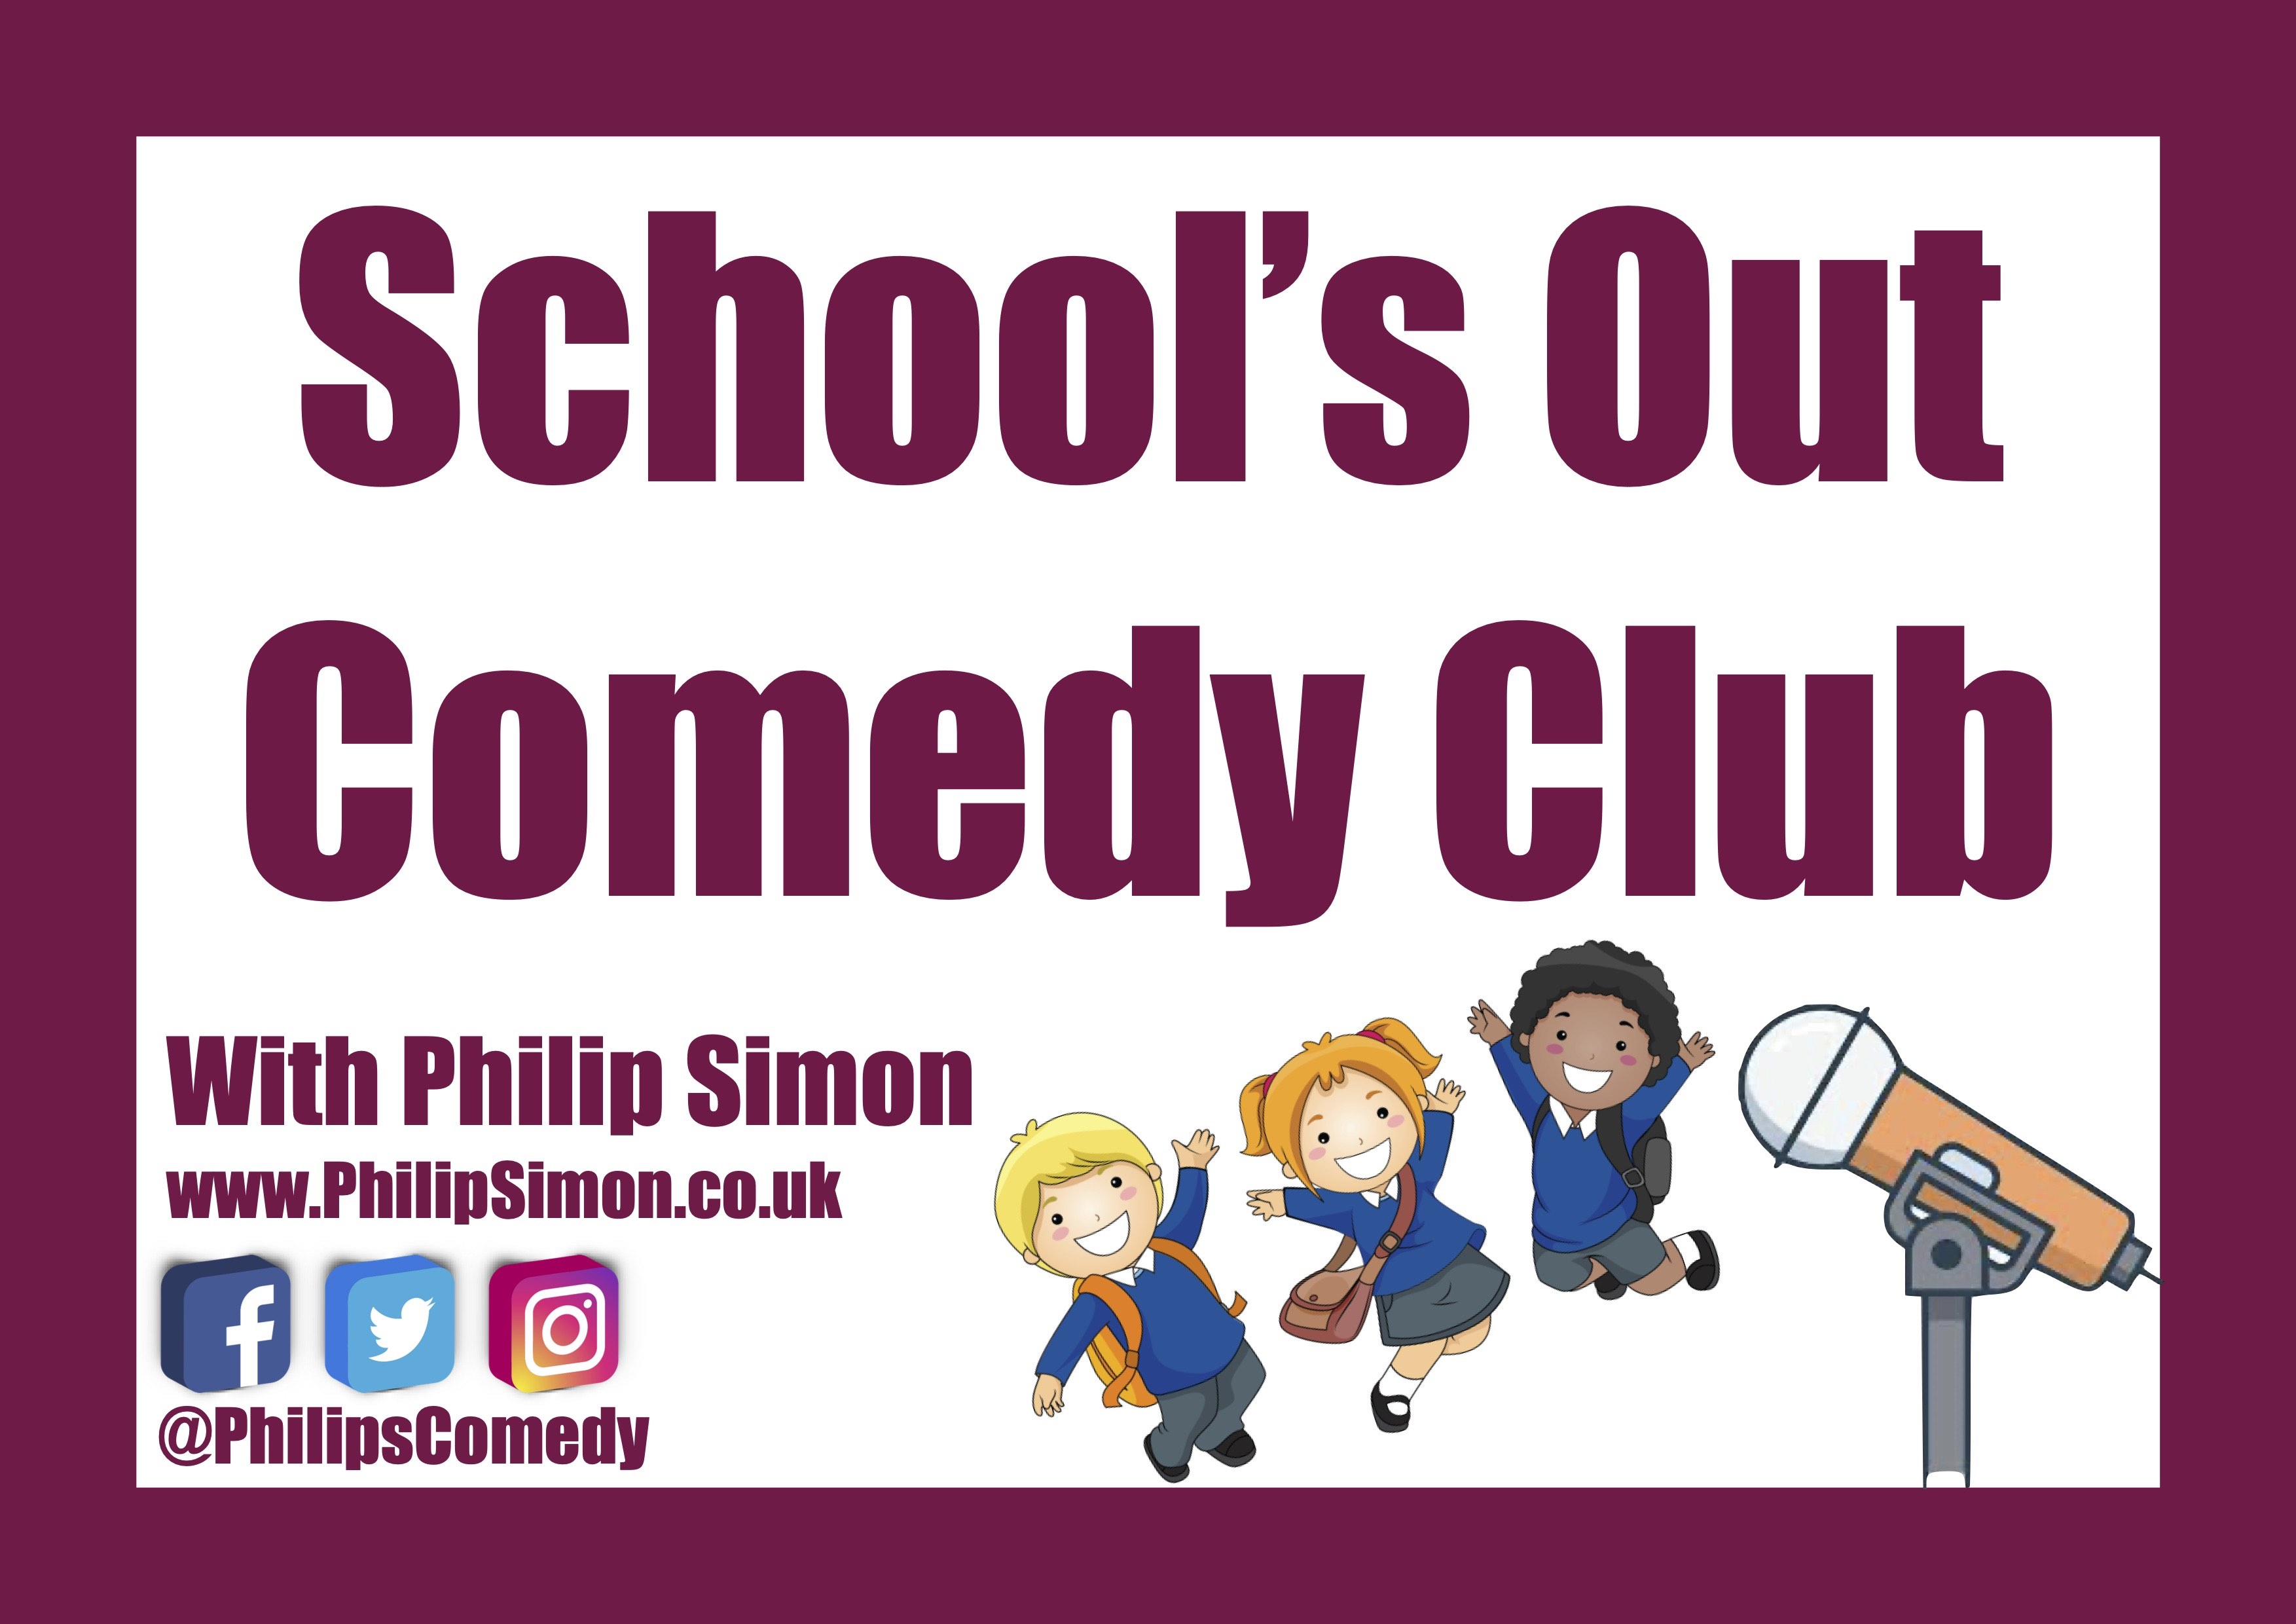 School's Out Comedy Club Live Stream